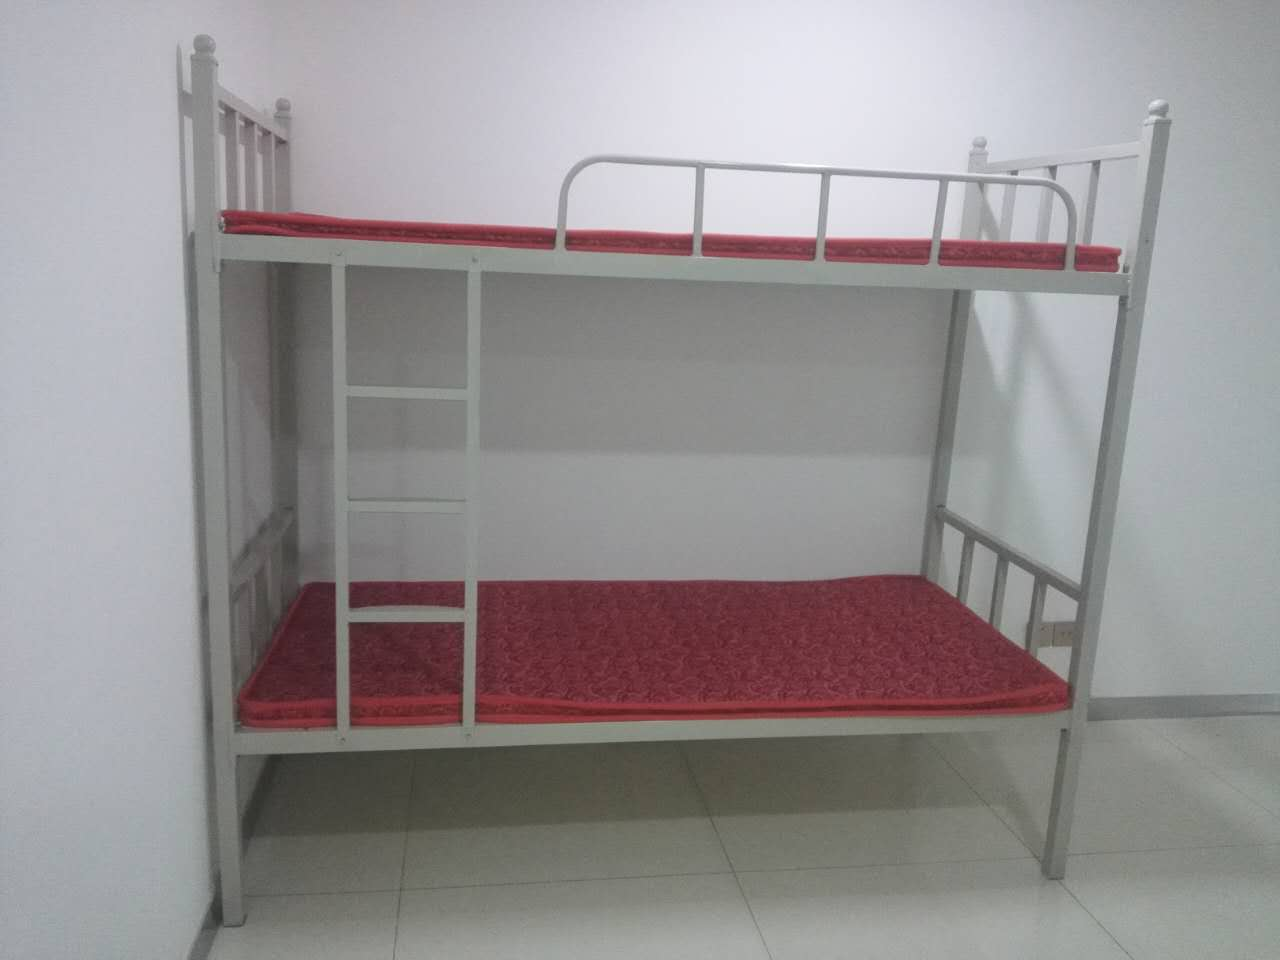 Double bed bunk bed bed iron adult trusteeship class student dormitory bed Xi'an package delivery installation